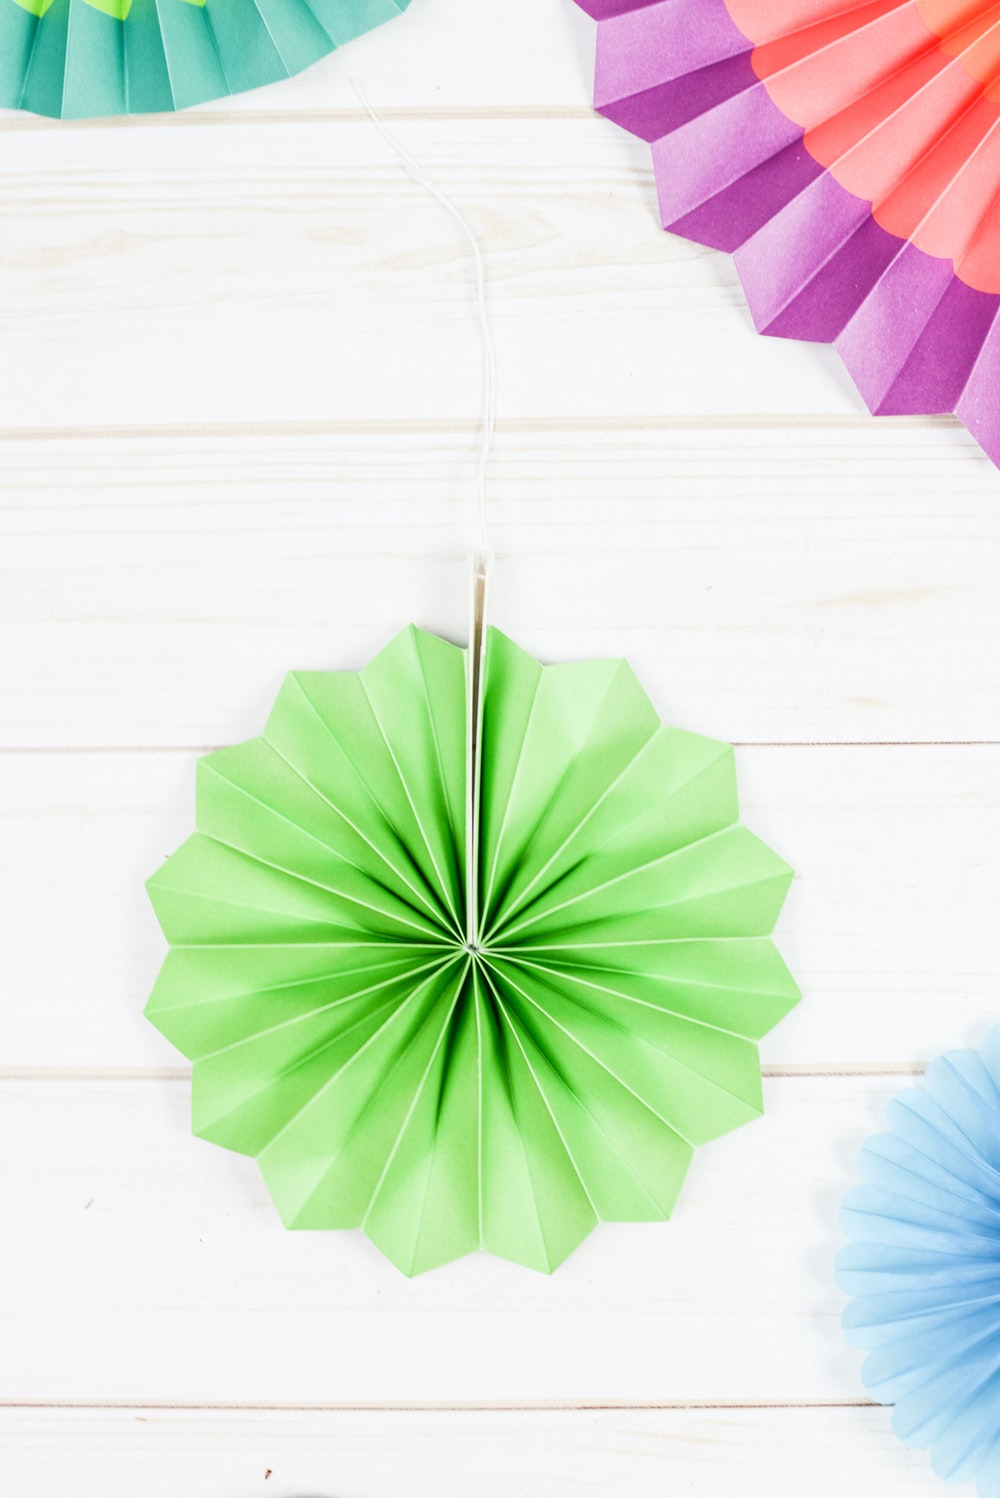 green paper decor on wall